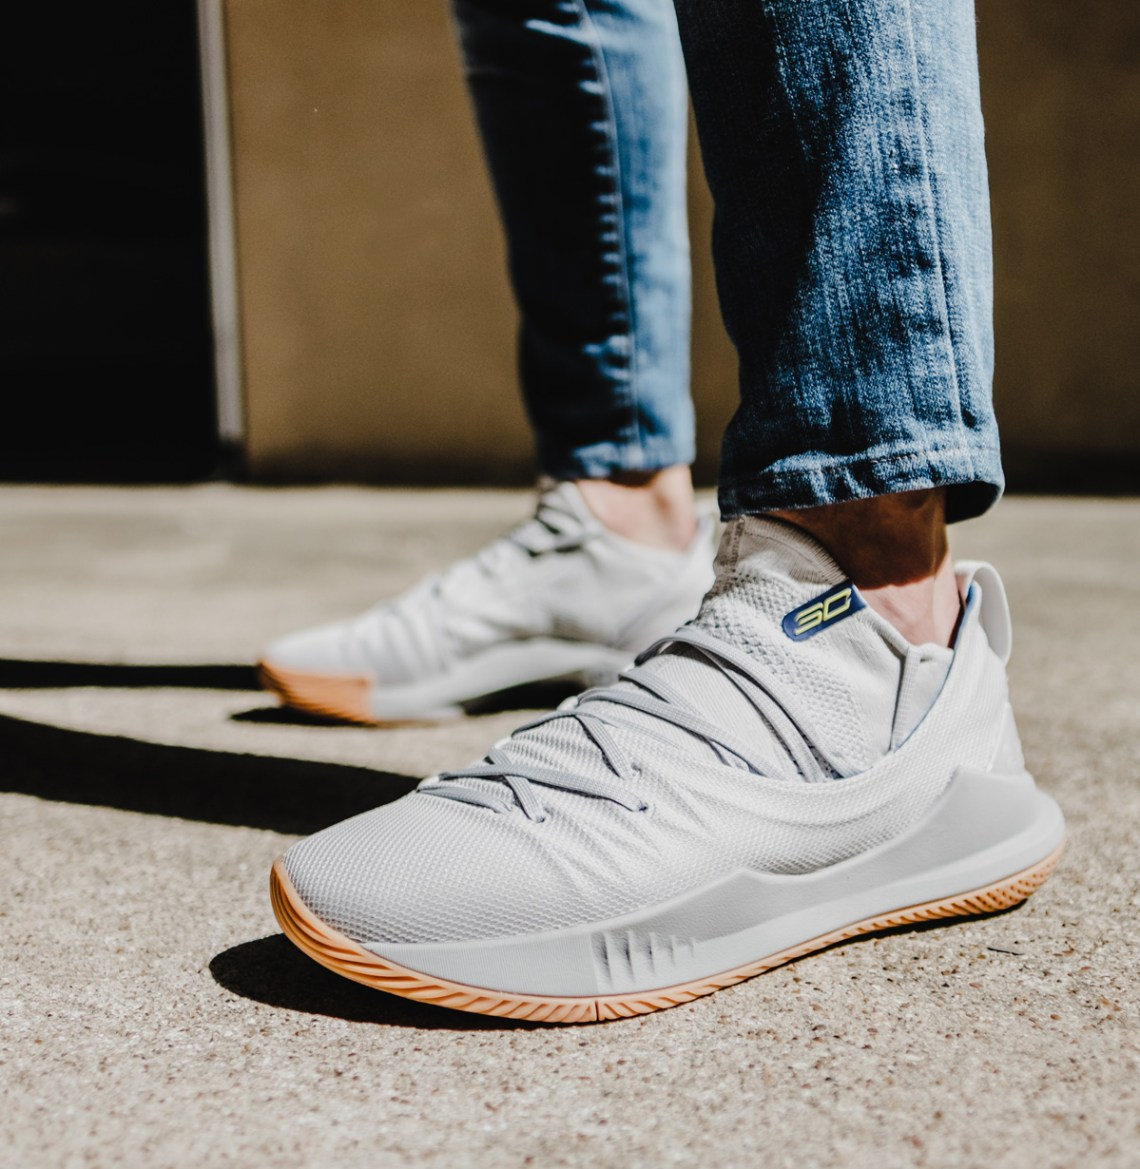 7565fb3176e1 The Grey   Gum Curry 5 seen below is available now on UA.com. Under Armour  Forge 96